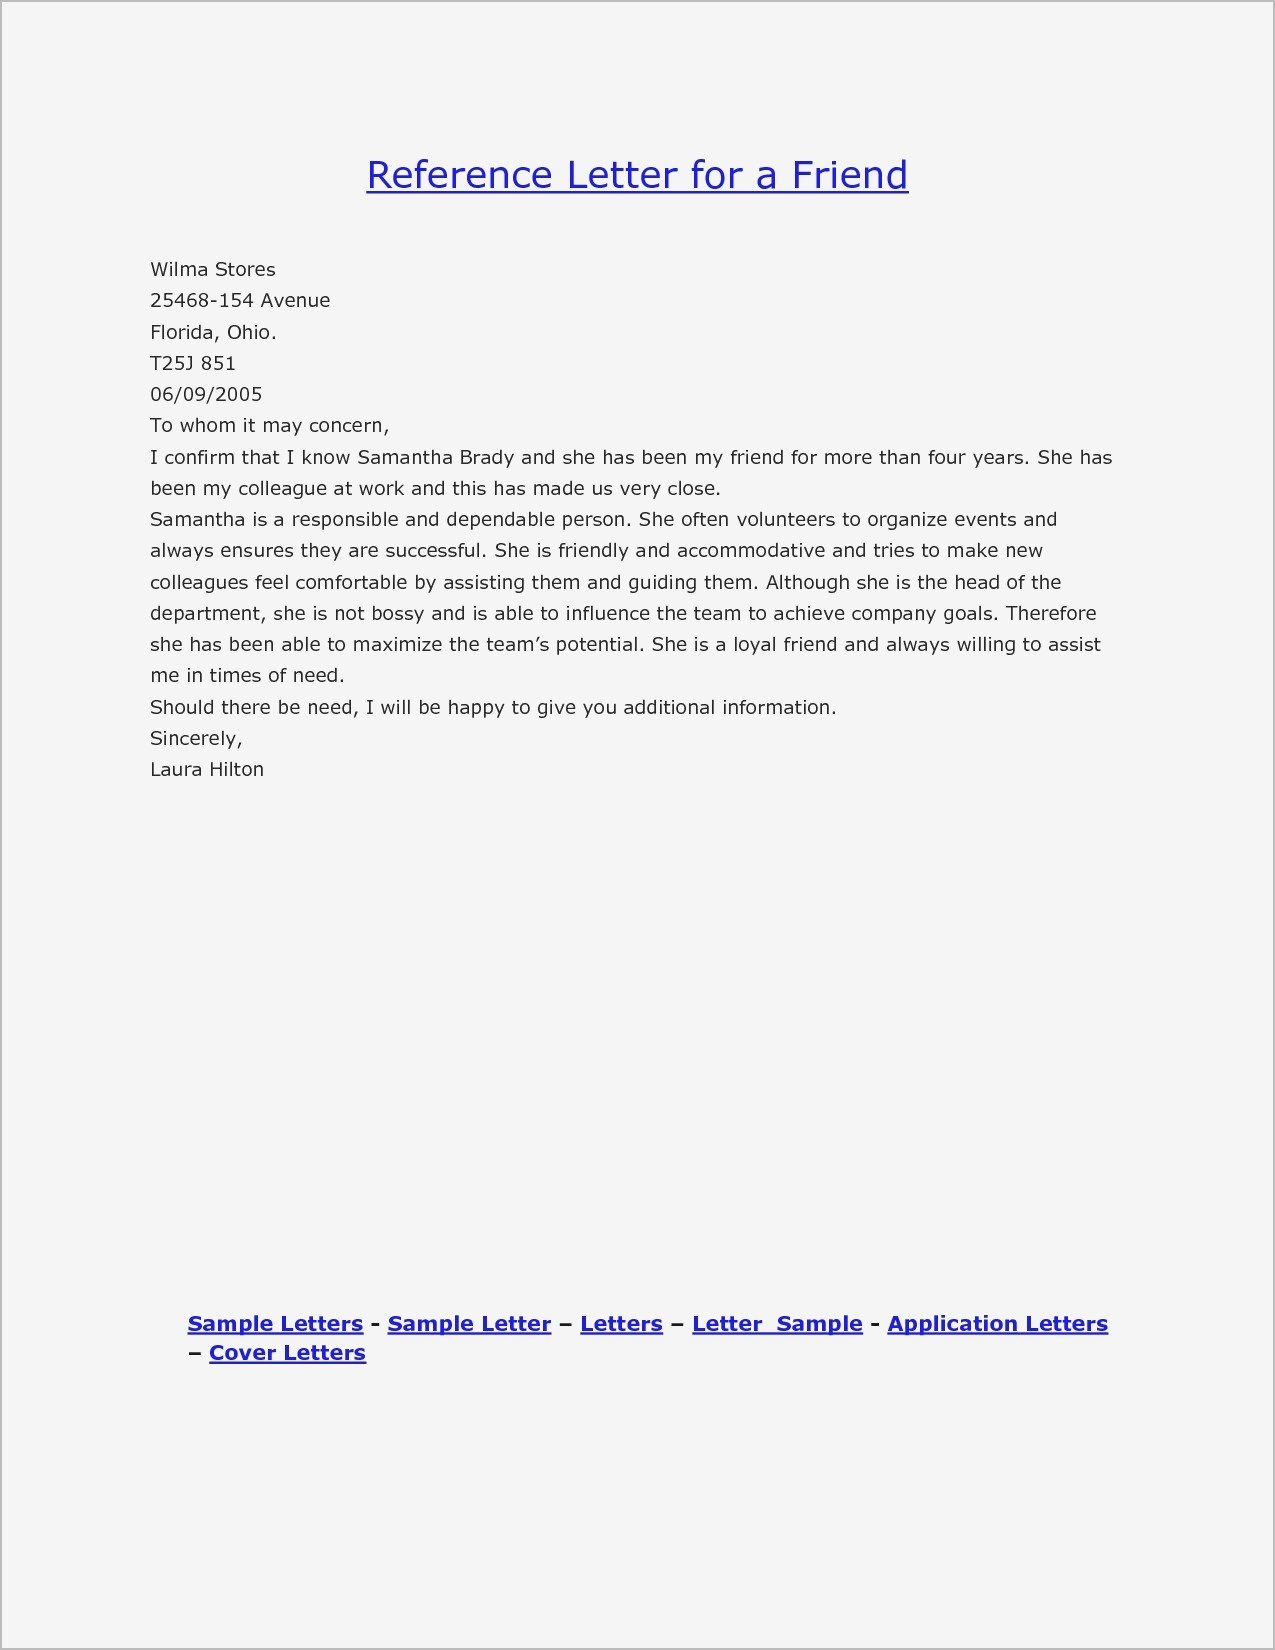 Personal Reference Letter for A Friend Template - Template Certificate Good Moral Character New Sample Character